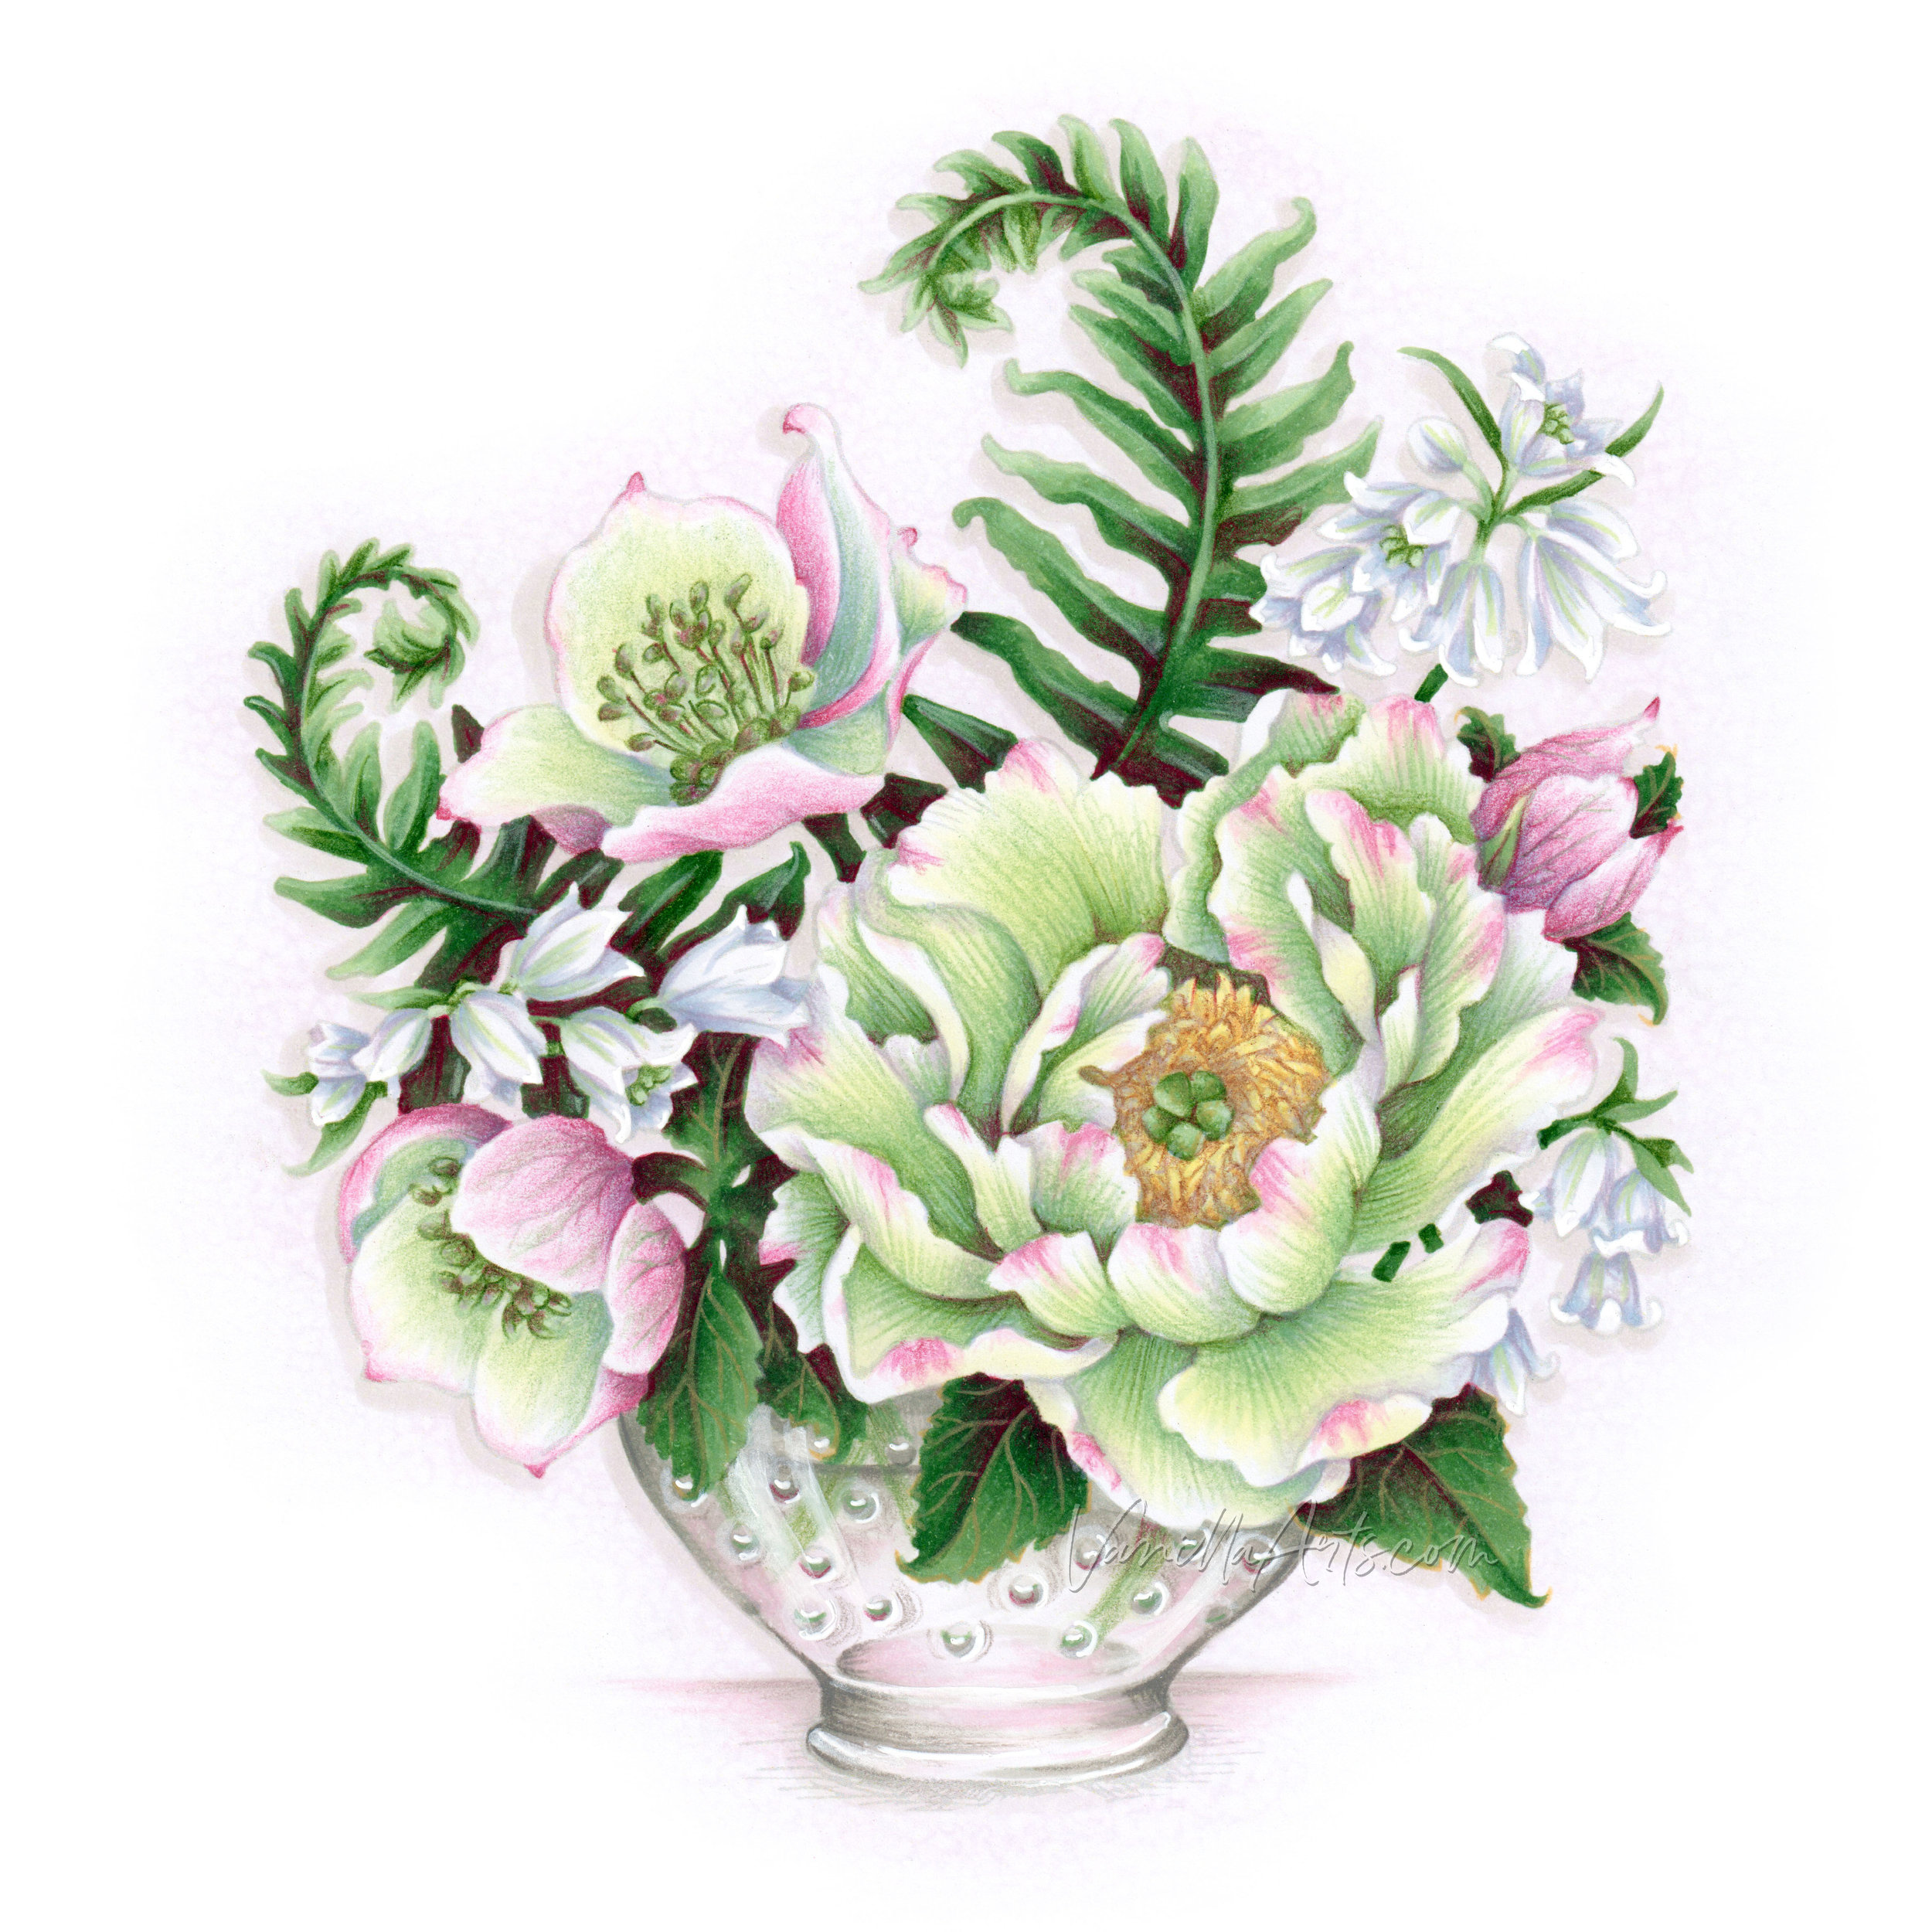 May 2019: Verdant Spring by VanillaArts.com